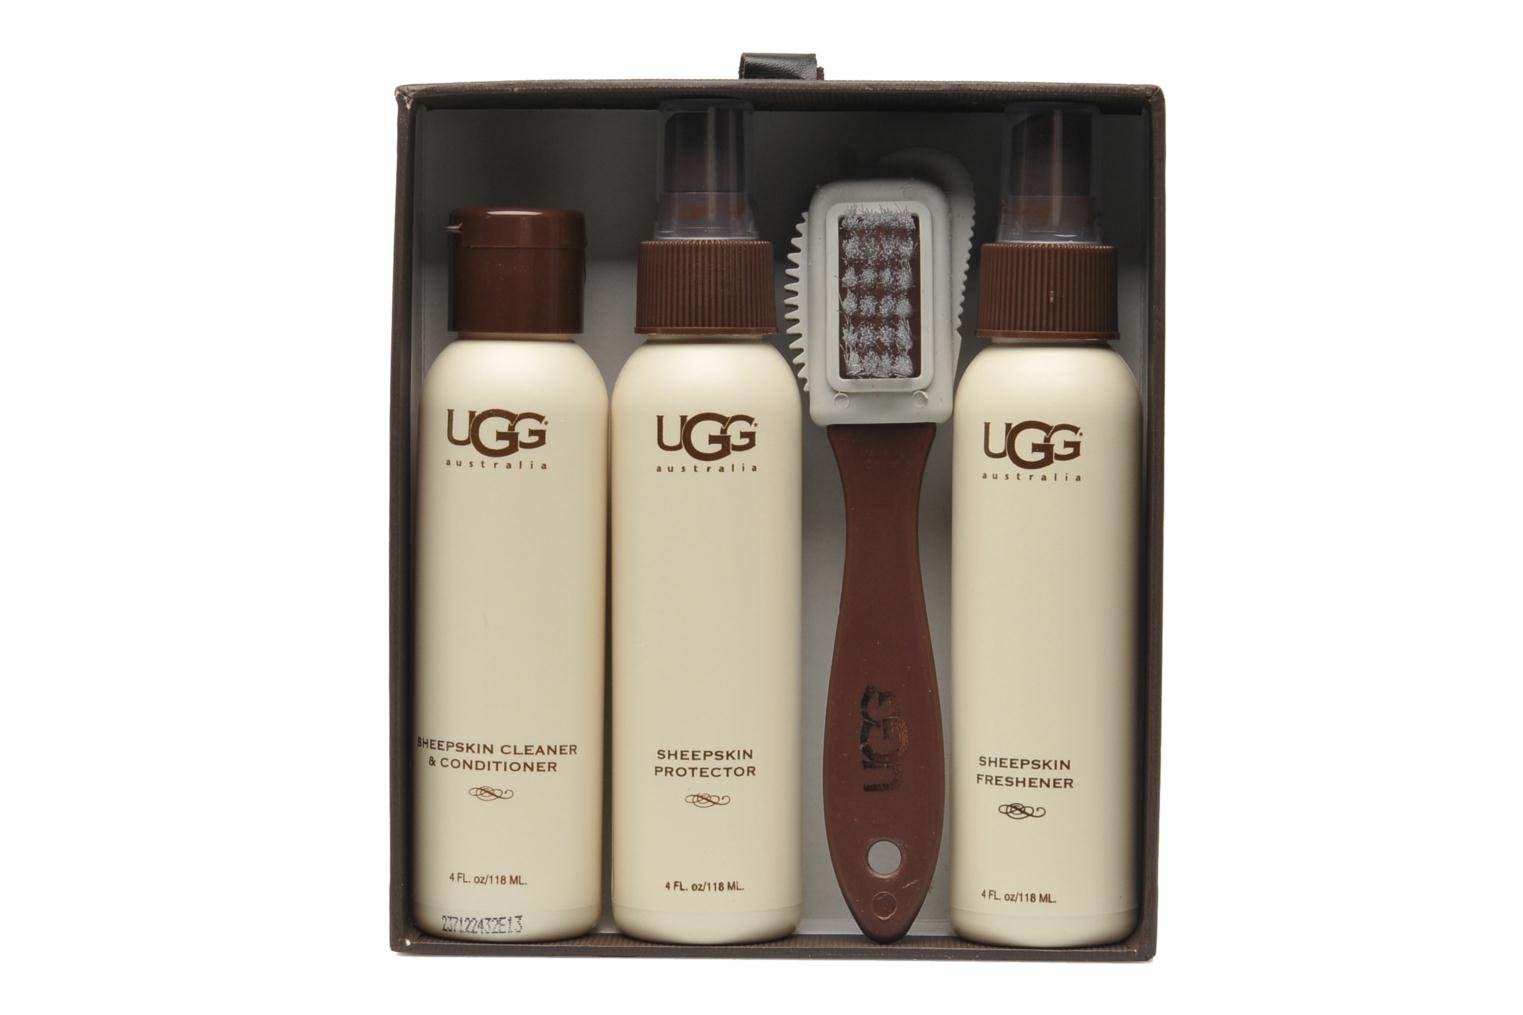 UGG Pflegeset Incolore